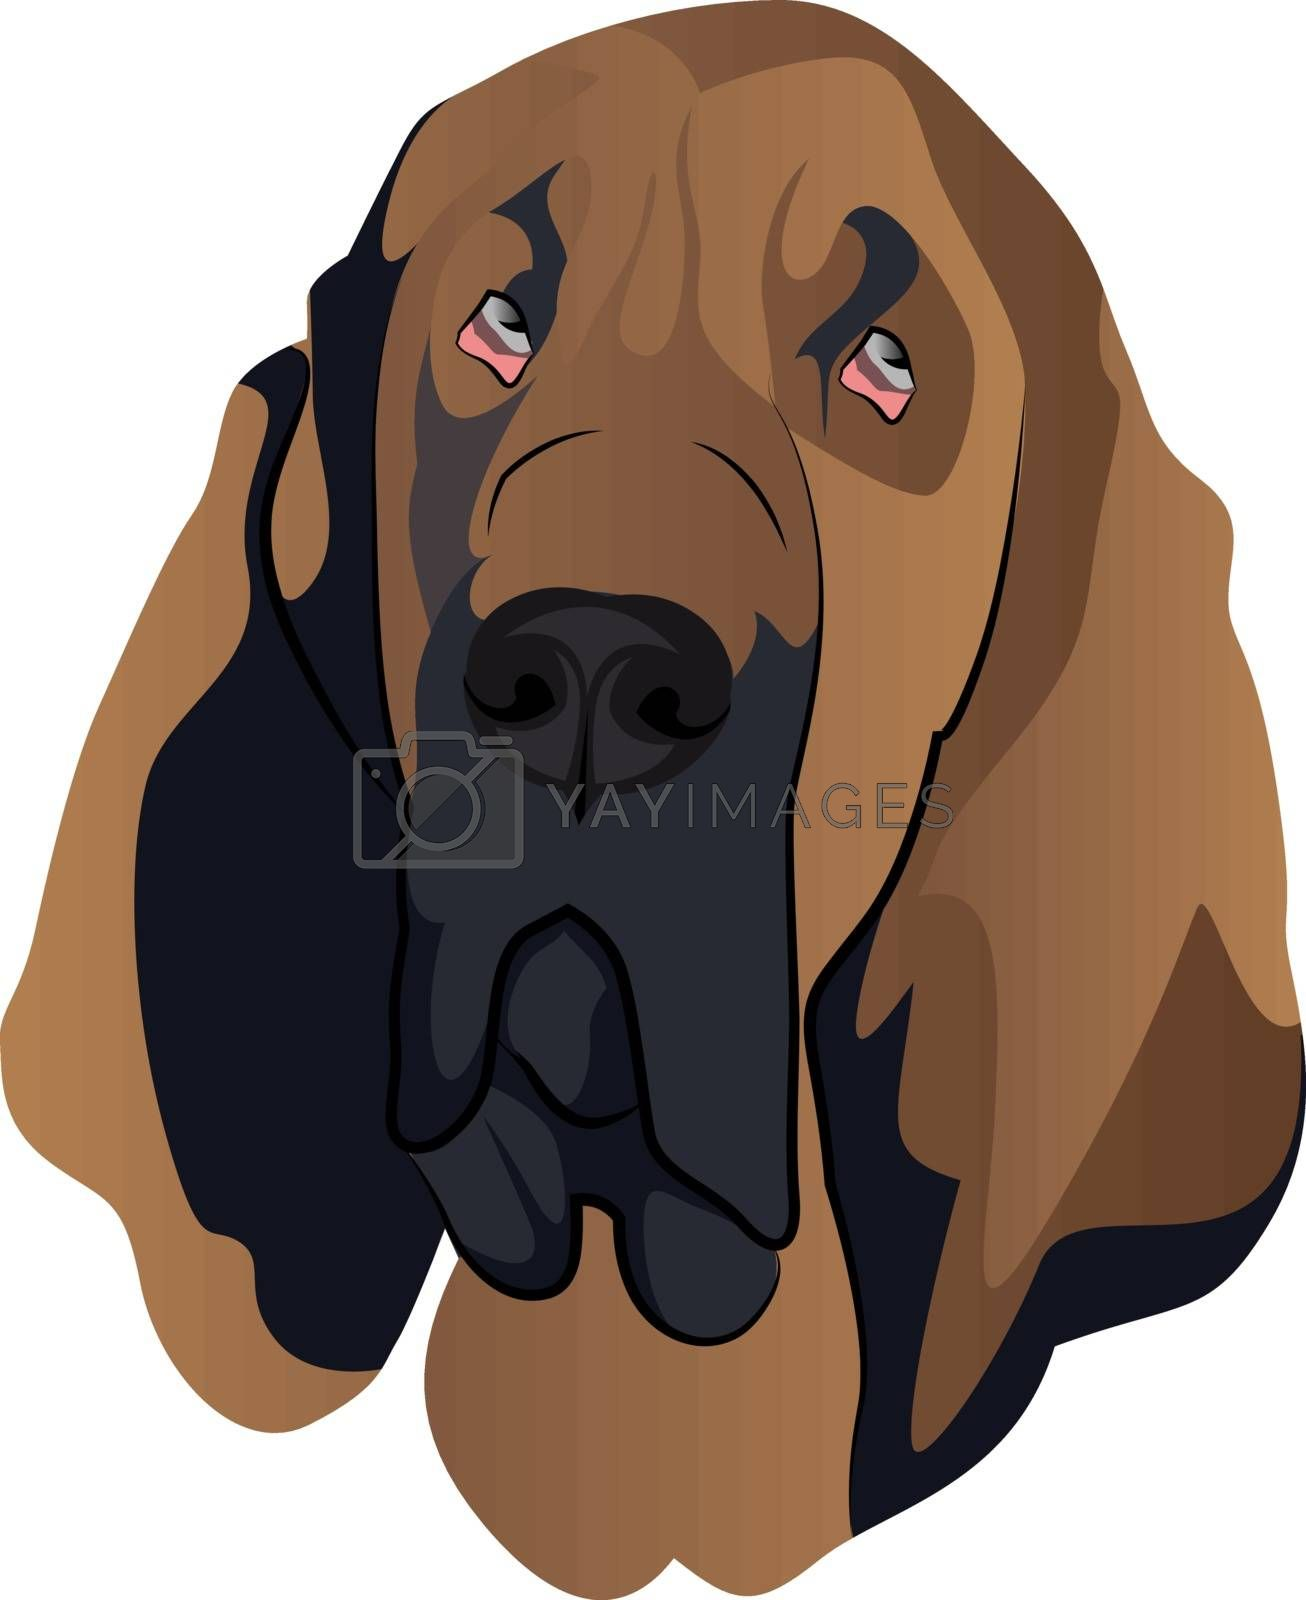 Royalty free image of Blood Hound illustration vector on white background by Morphart